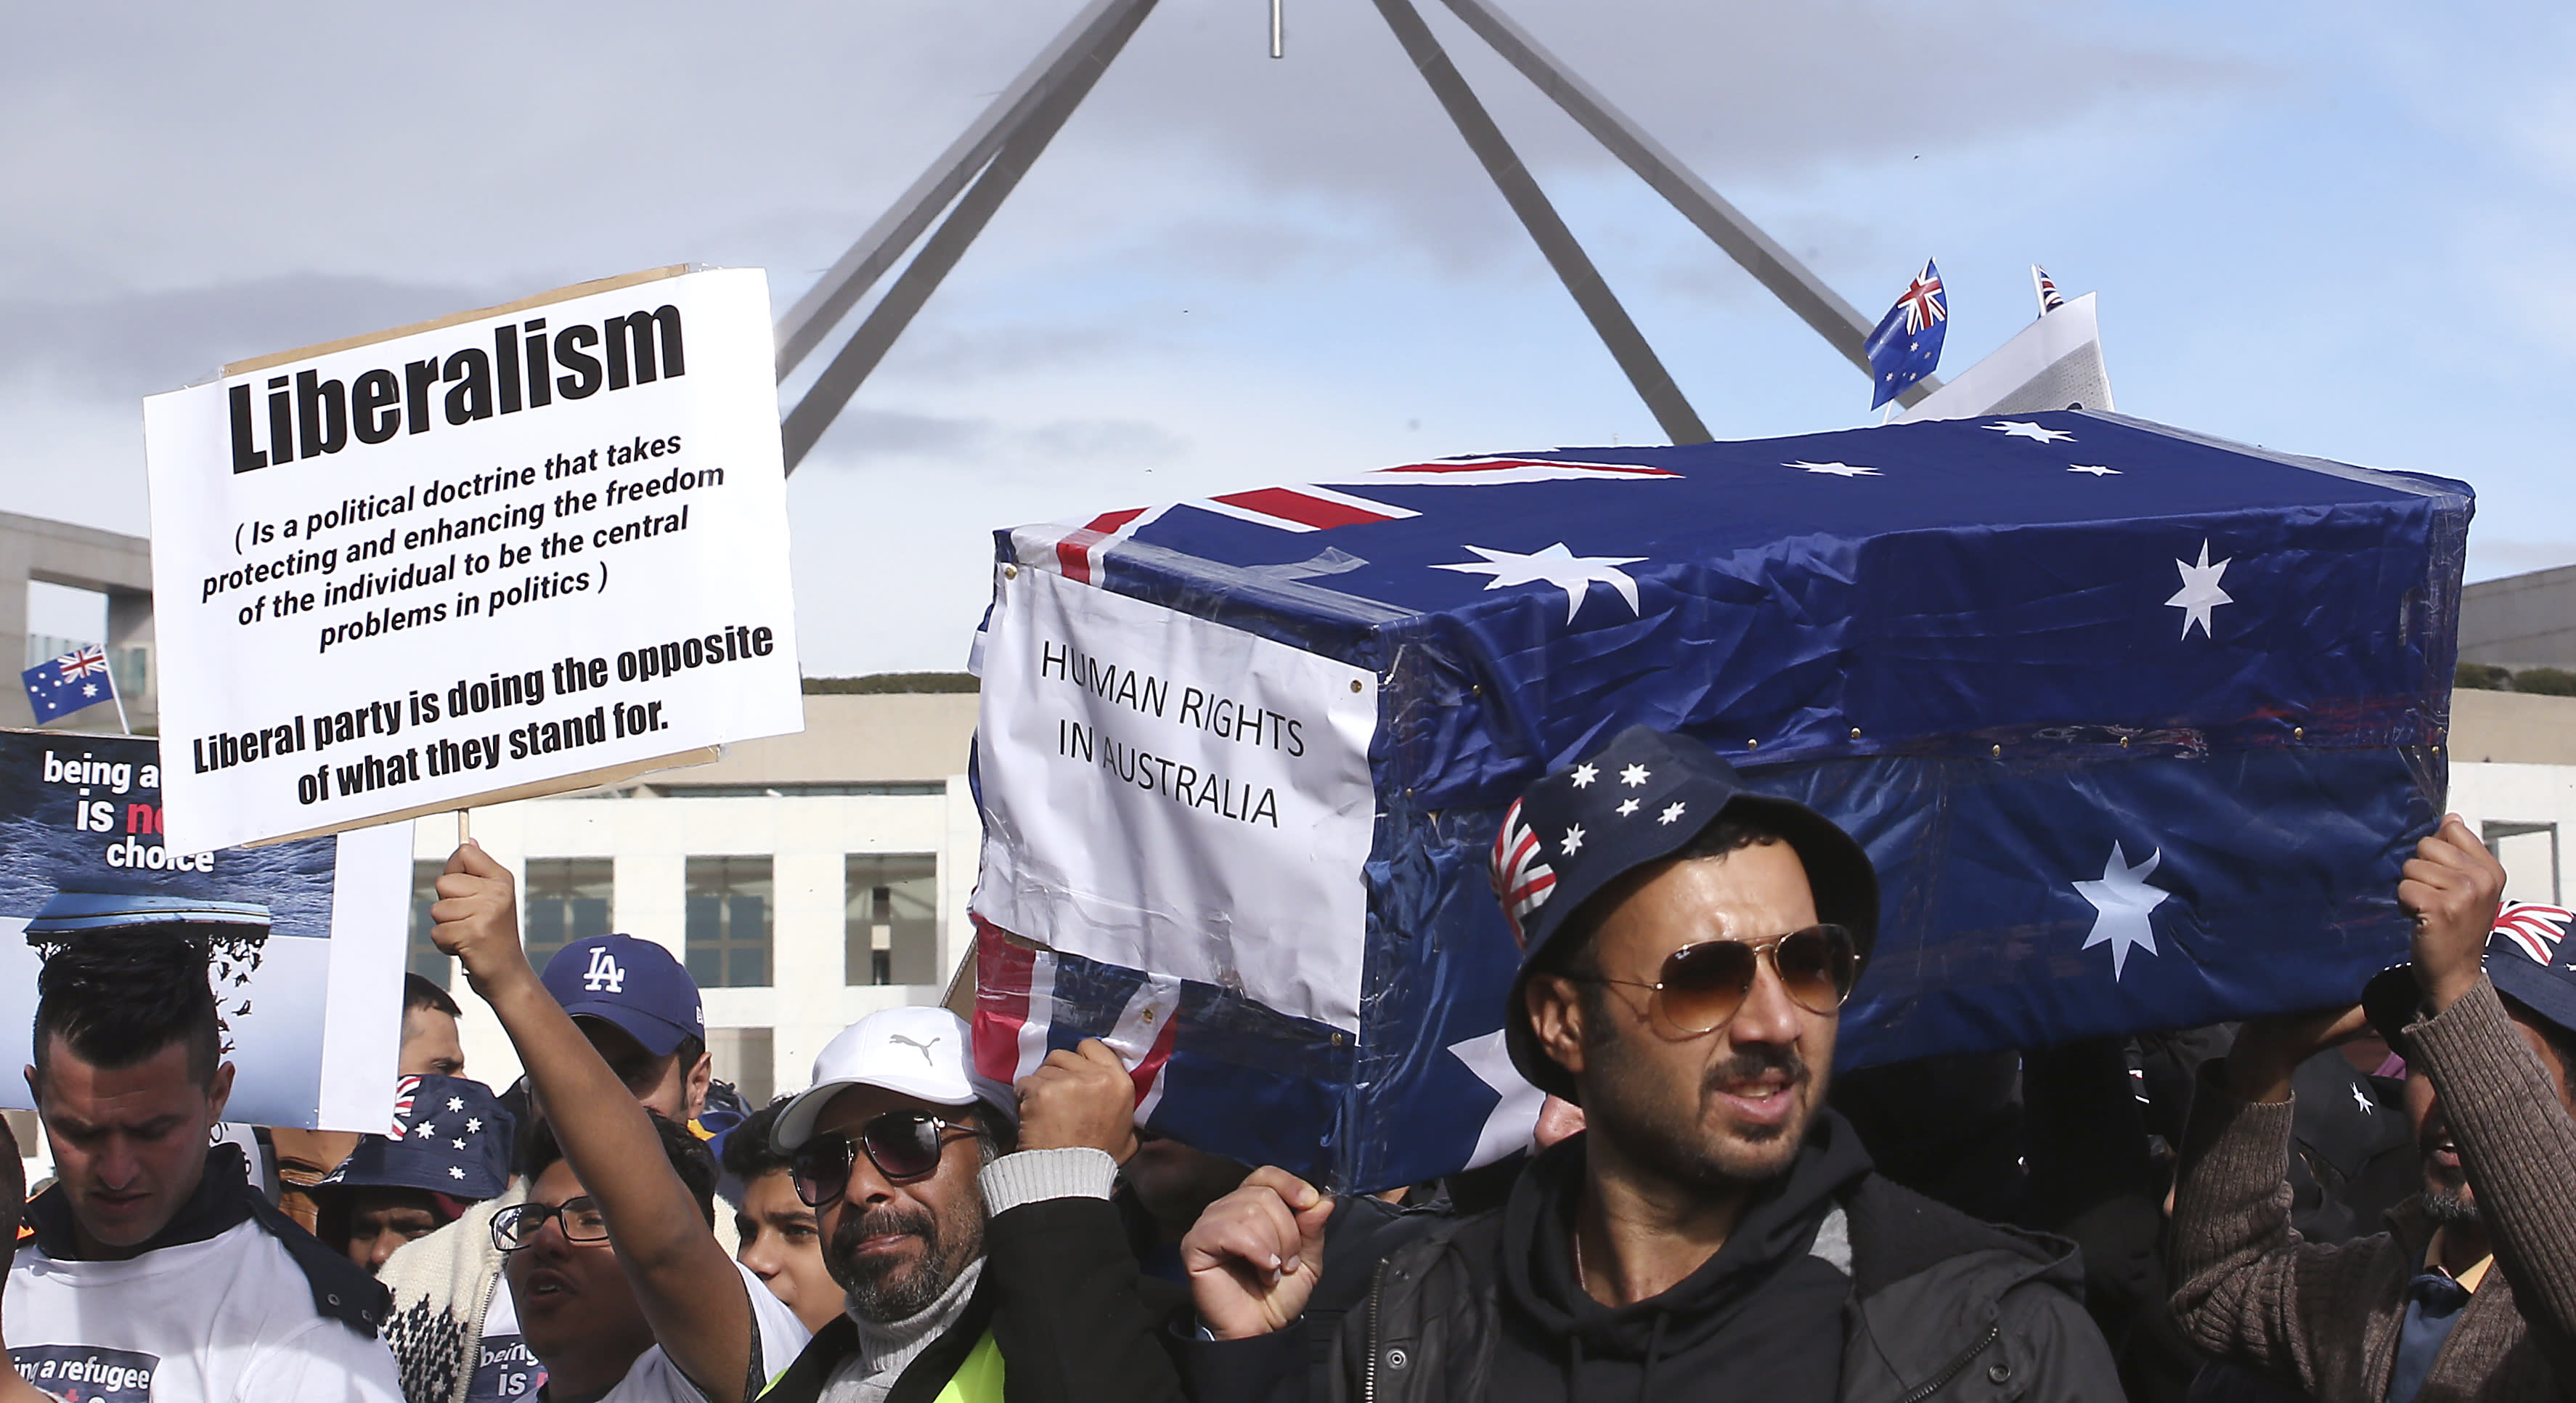 Protestors hold up a placard and a symbolic coffin during a refugee protest at Parliament House in Canberra, Australia, Monday, July 29, 2019. Hundreds of protesters are rallying outside Parliament House highlighting the uncertain futures of many refugees since Australia replaced permanent protection visas with temporary visas. (AP Photo/Rod McGuirk)